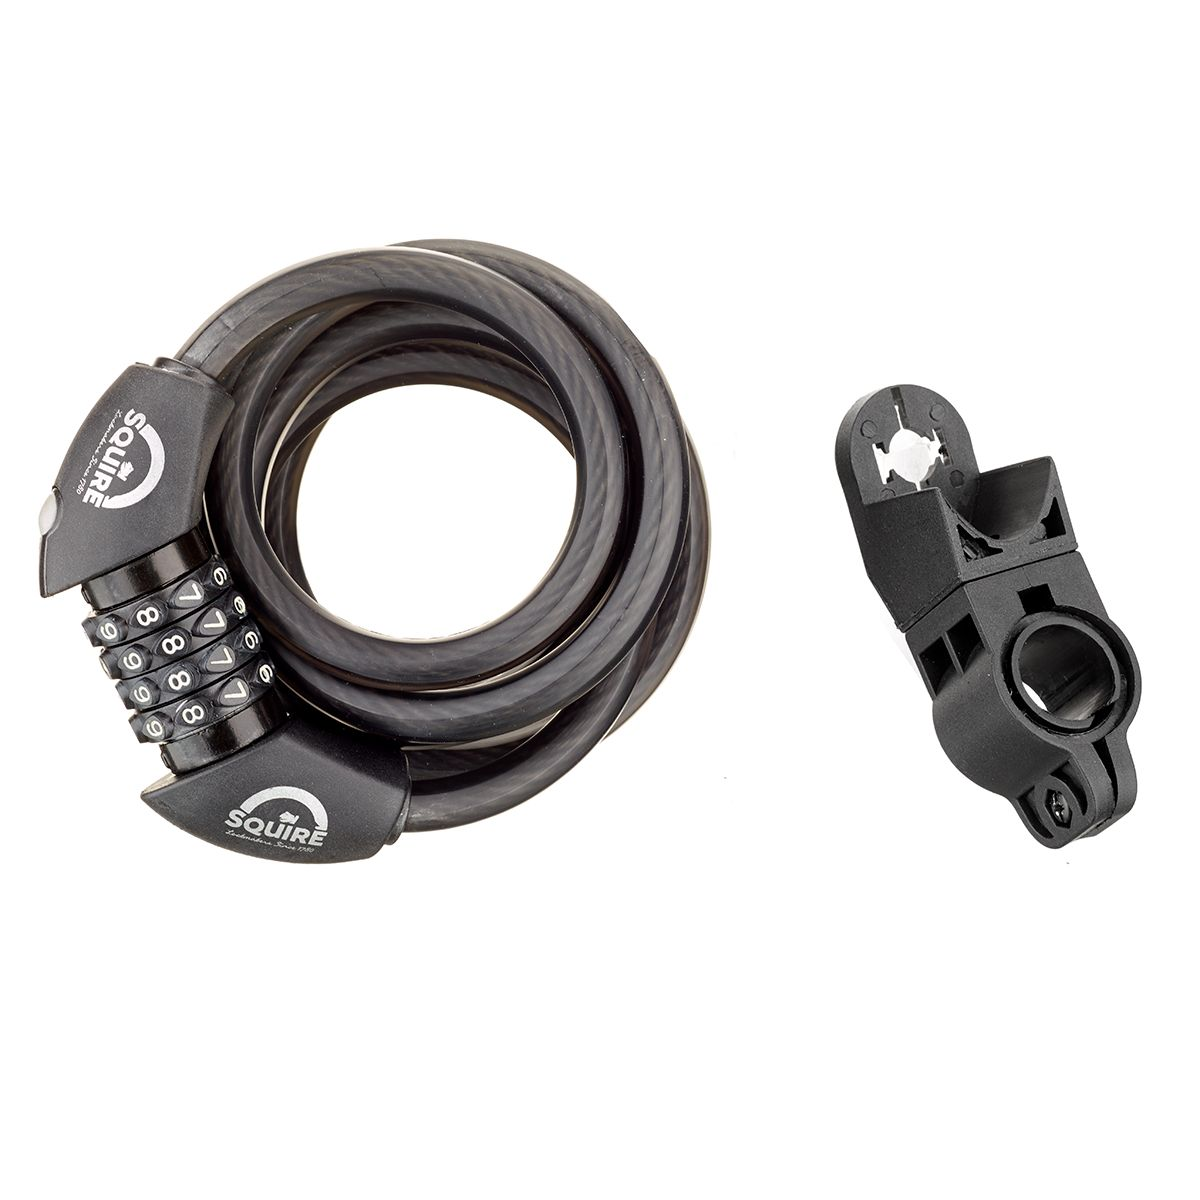 Squire Zenith ZR Combi 12/1800 Cable Lock with LED Light | Løse låse